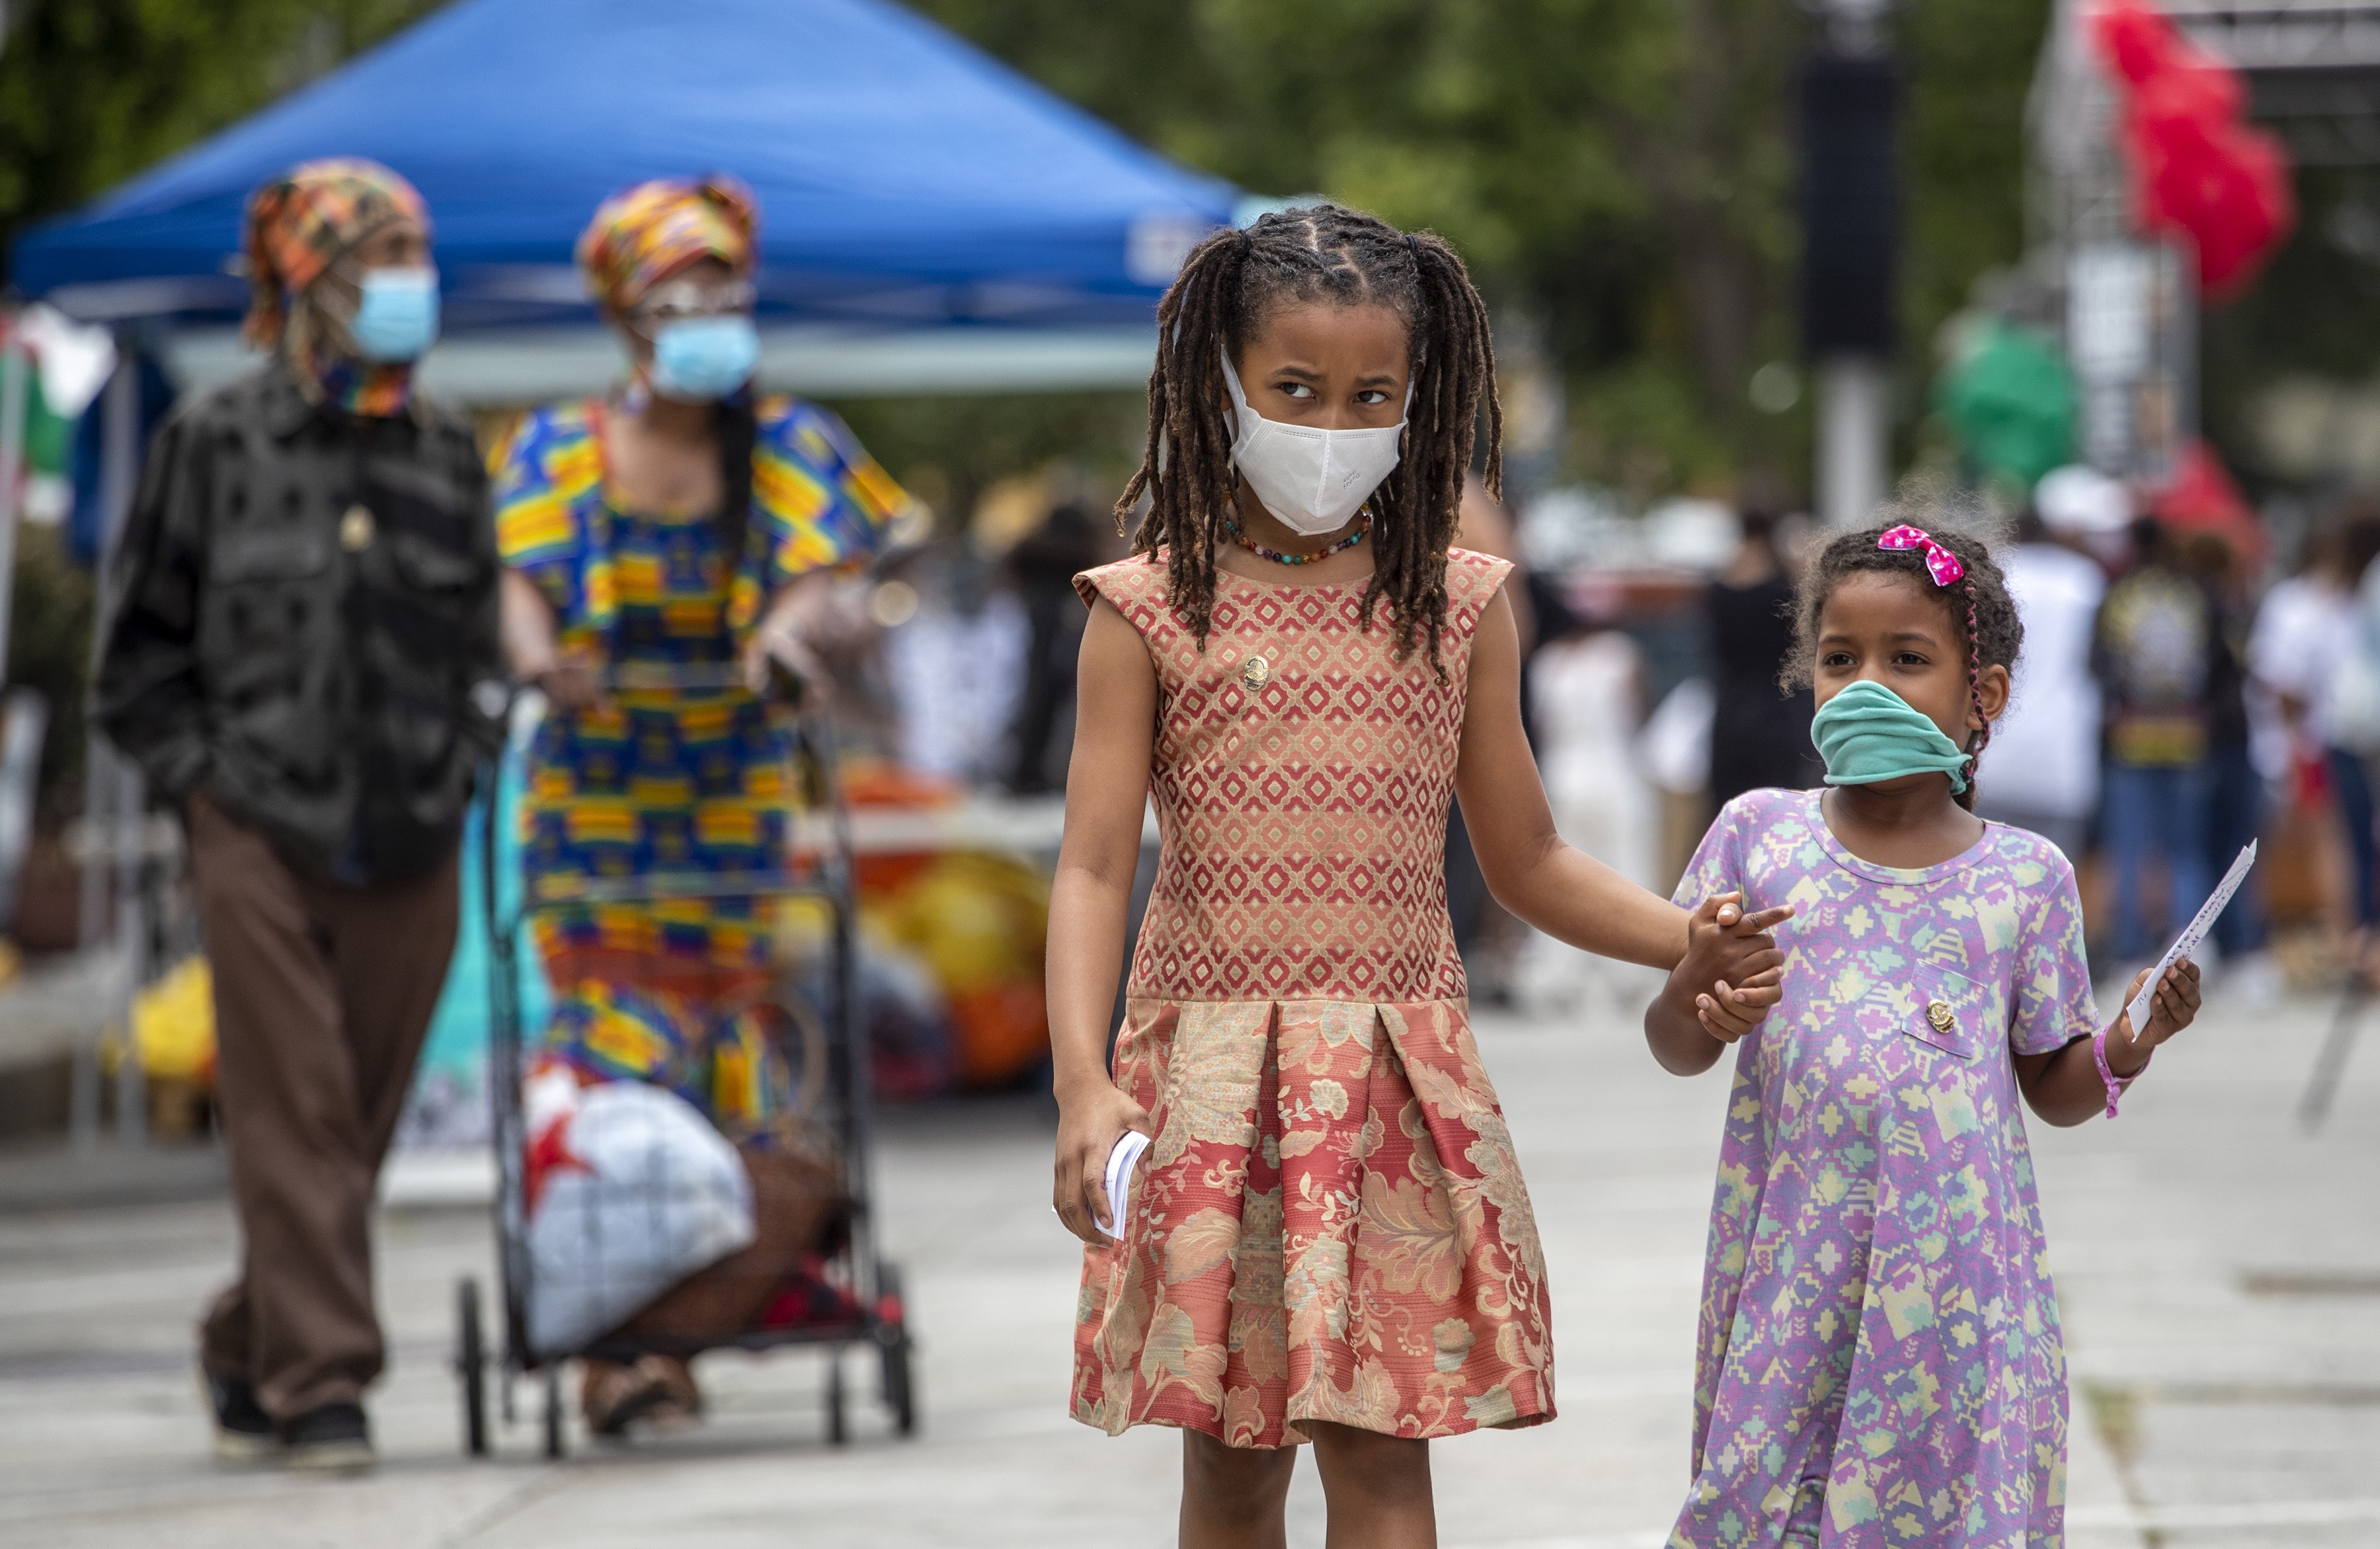 Two young African-American girls walk together, holding hands during the Leimert Park Rising Juneteenth celebration in LA.